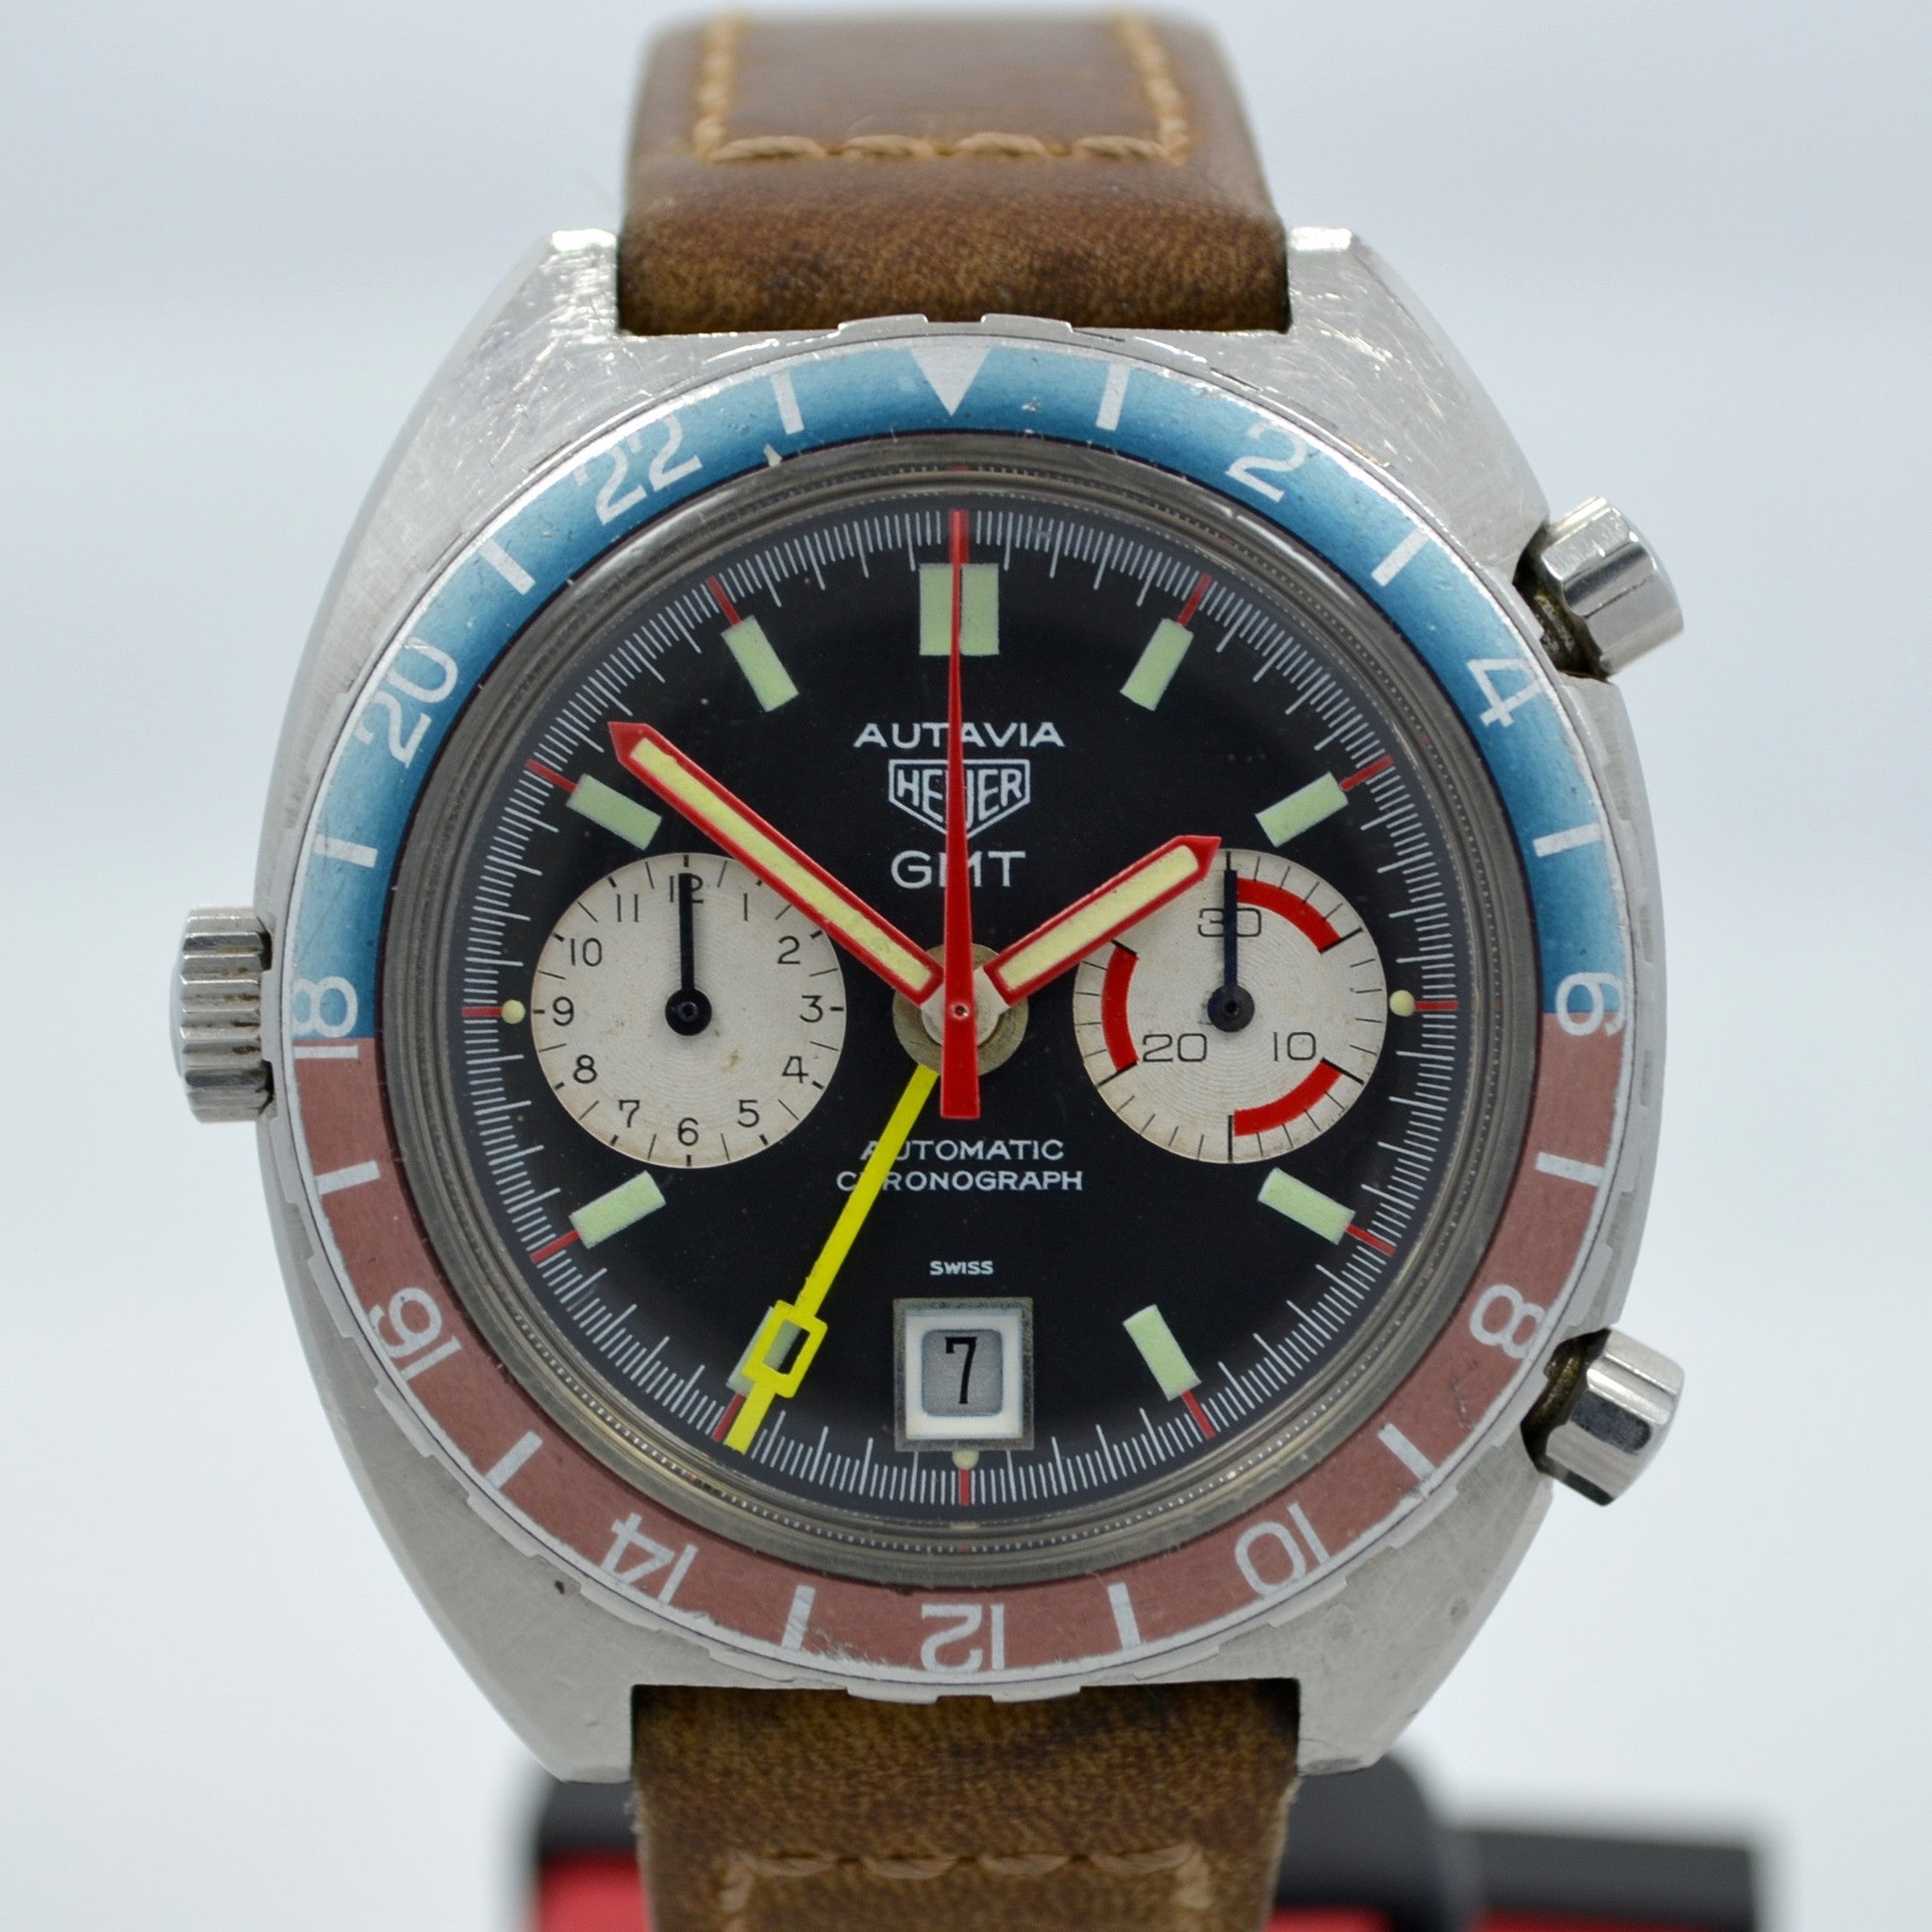 Vintage Heuer Autavia GMT 1163 Cal. 14 Automatic Steel Chronograph Wristwatch - Hashtag Watch Company